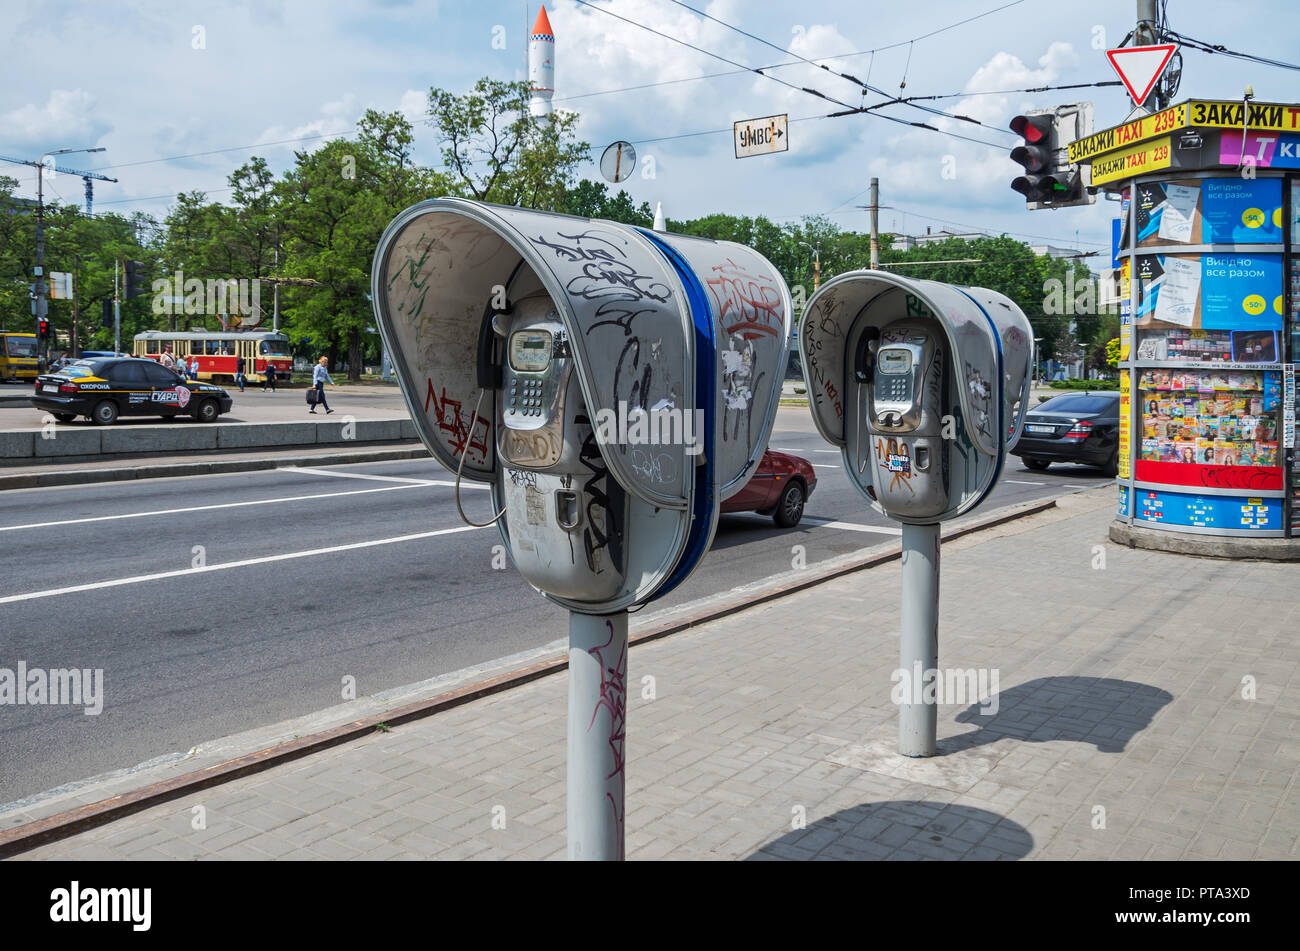 Dnipro, Ukraine - May 23, 2018: Old vandalized payphones at crossroads of the streets of Dnipro city. Obsolete means of telephone communication - Stock Image